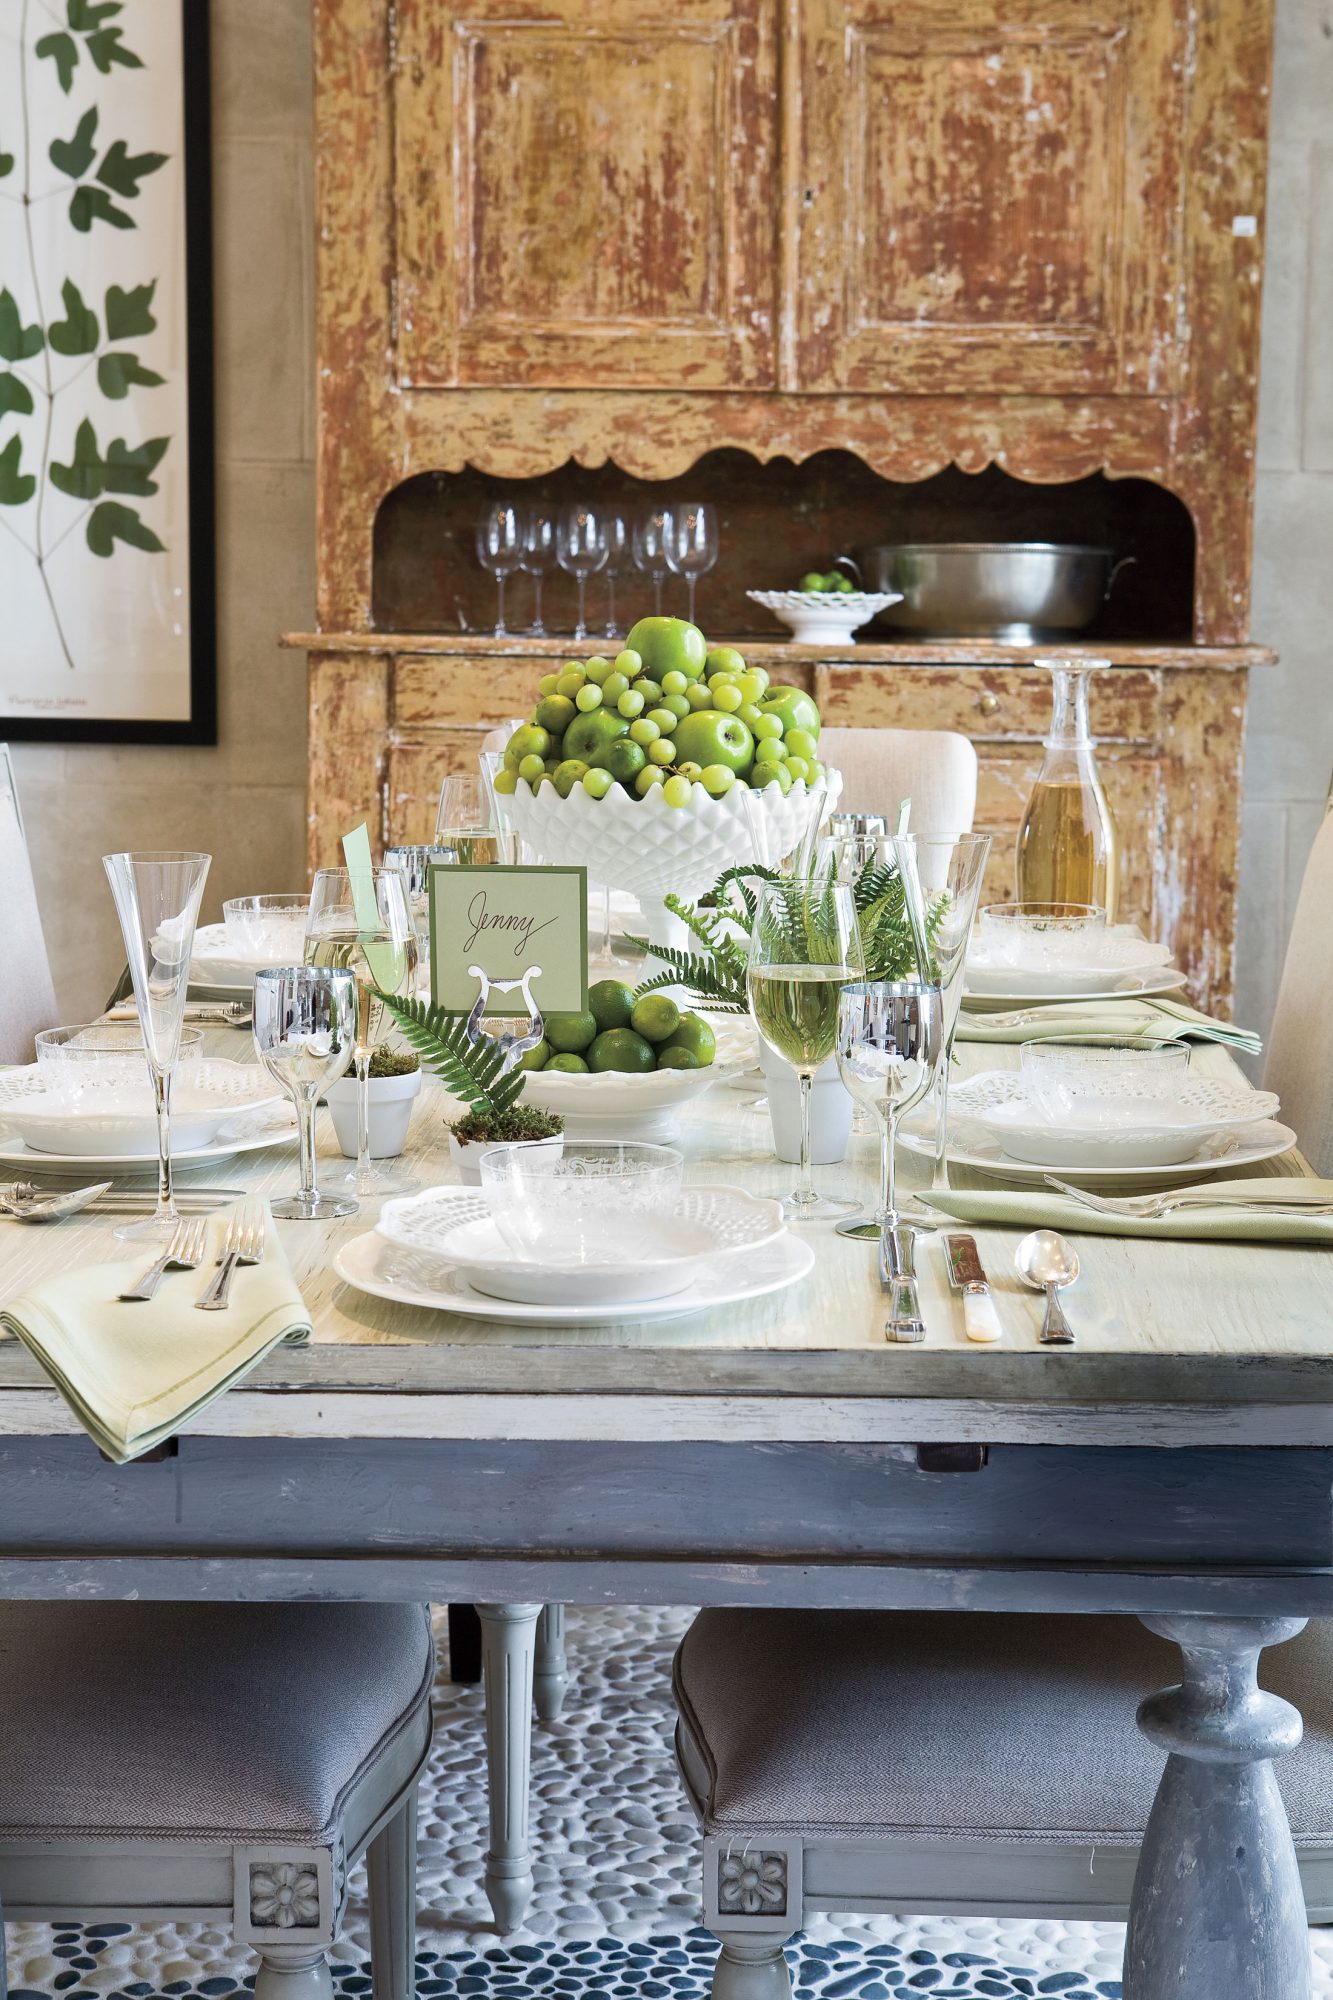 Table Place Settings for Entertaining: Casual Yet Elegant